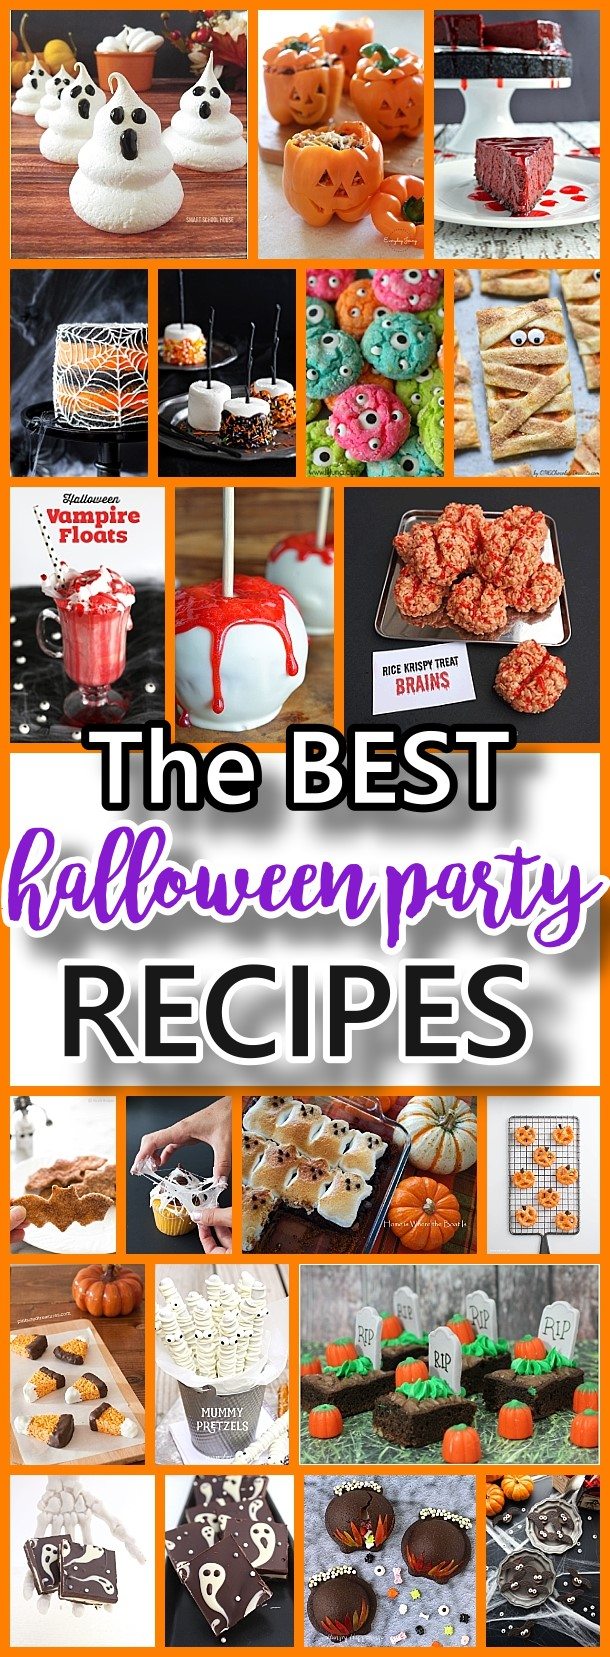 THE BEST Halloween Party Treats - Appetizers and Desserts Recipes #halloween #halloweenrecipes